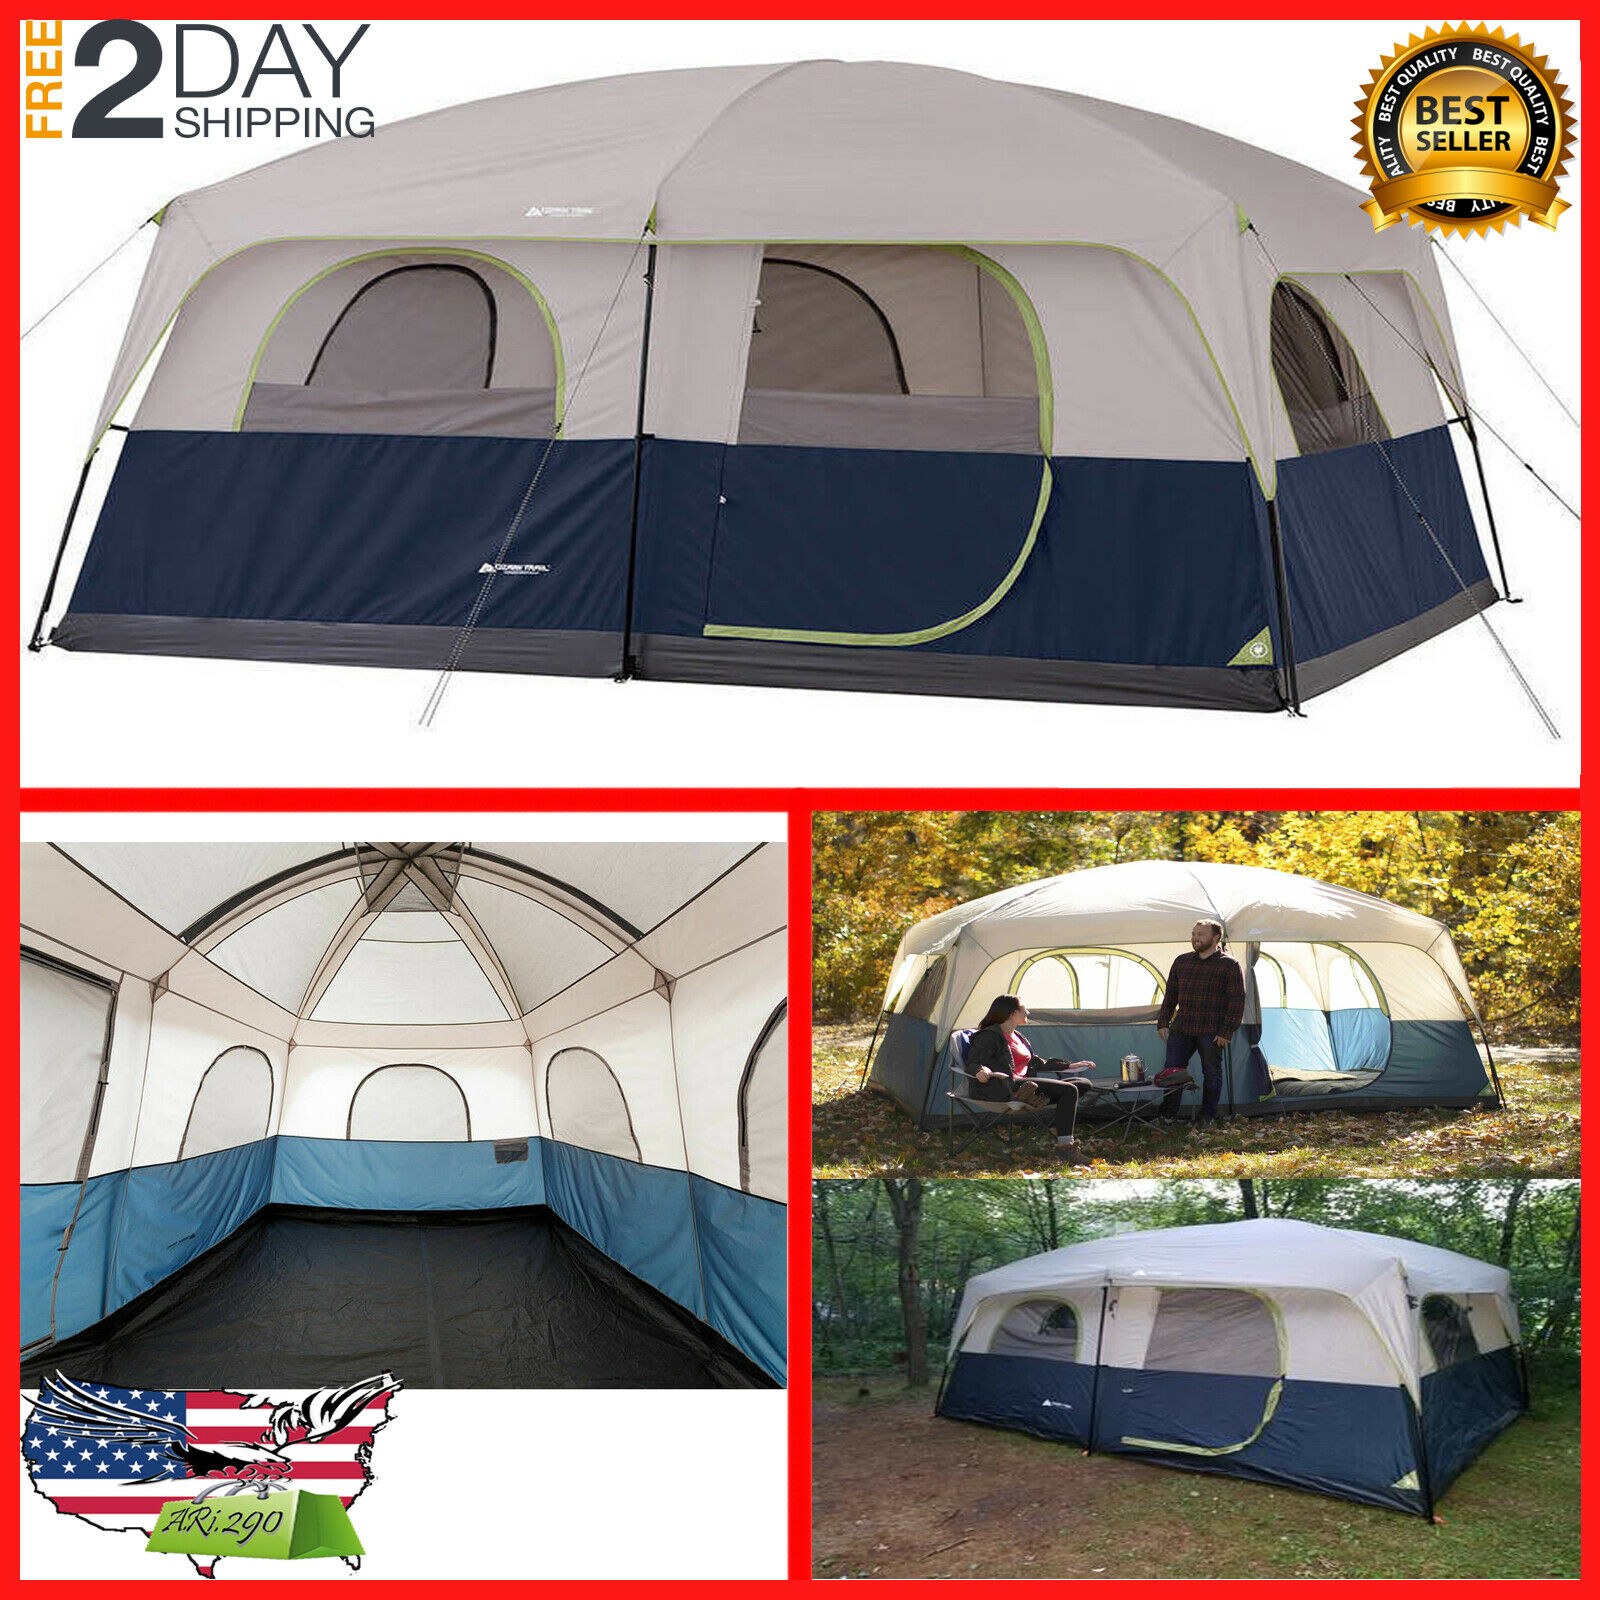 Ozark Trail 14' x 10' Family Cabin Tent 10 Person Outdoor Ca